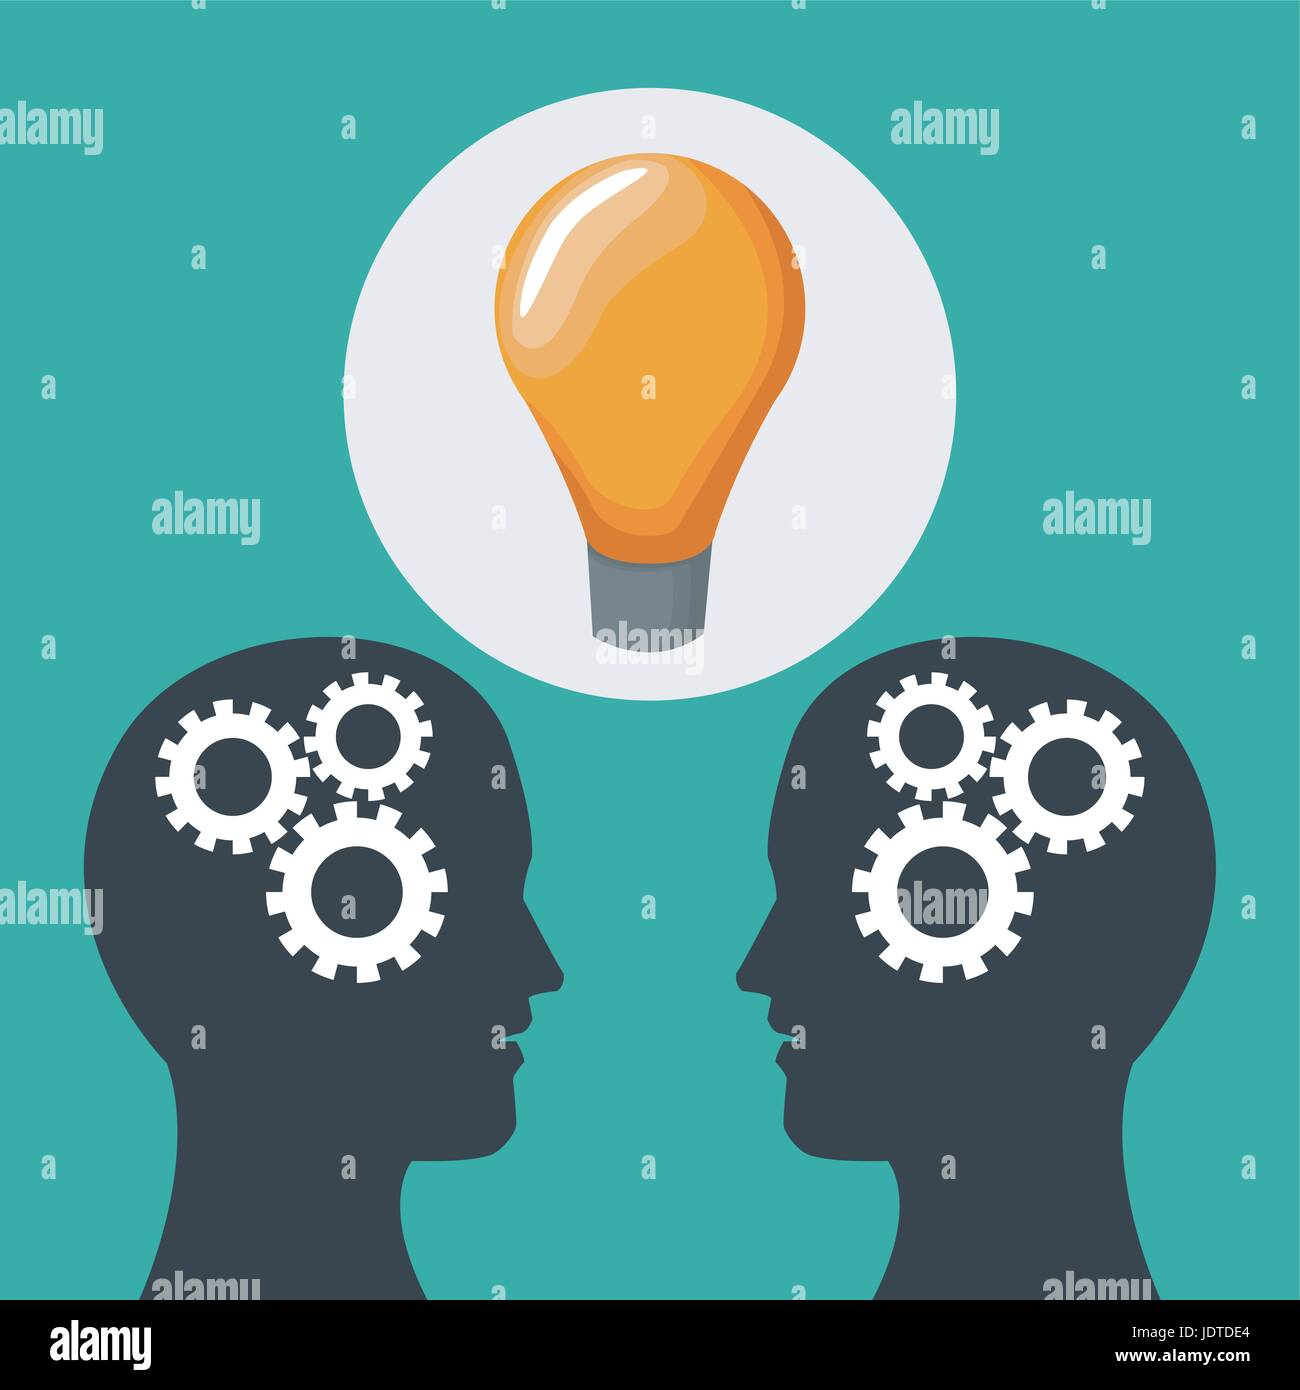 color background two heads of people with mechanisms and solution icon - Stock Image